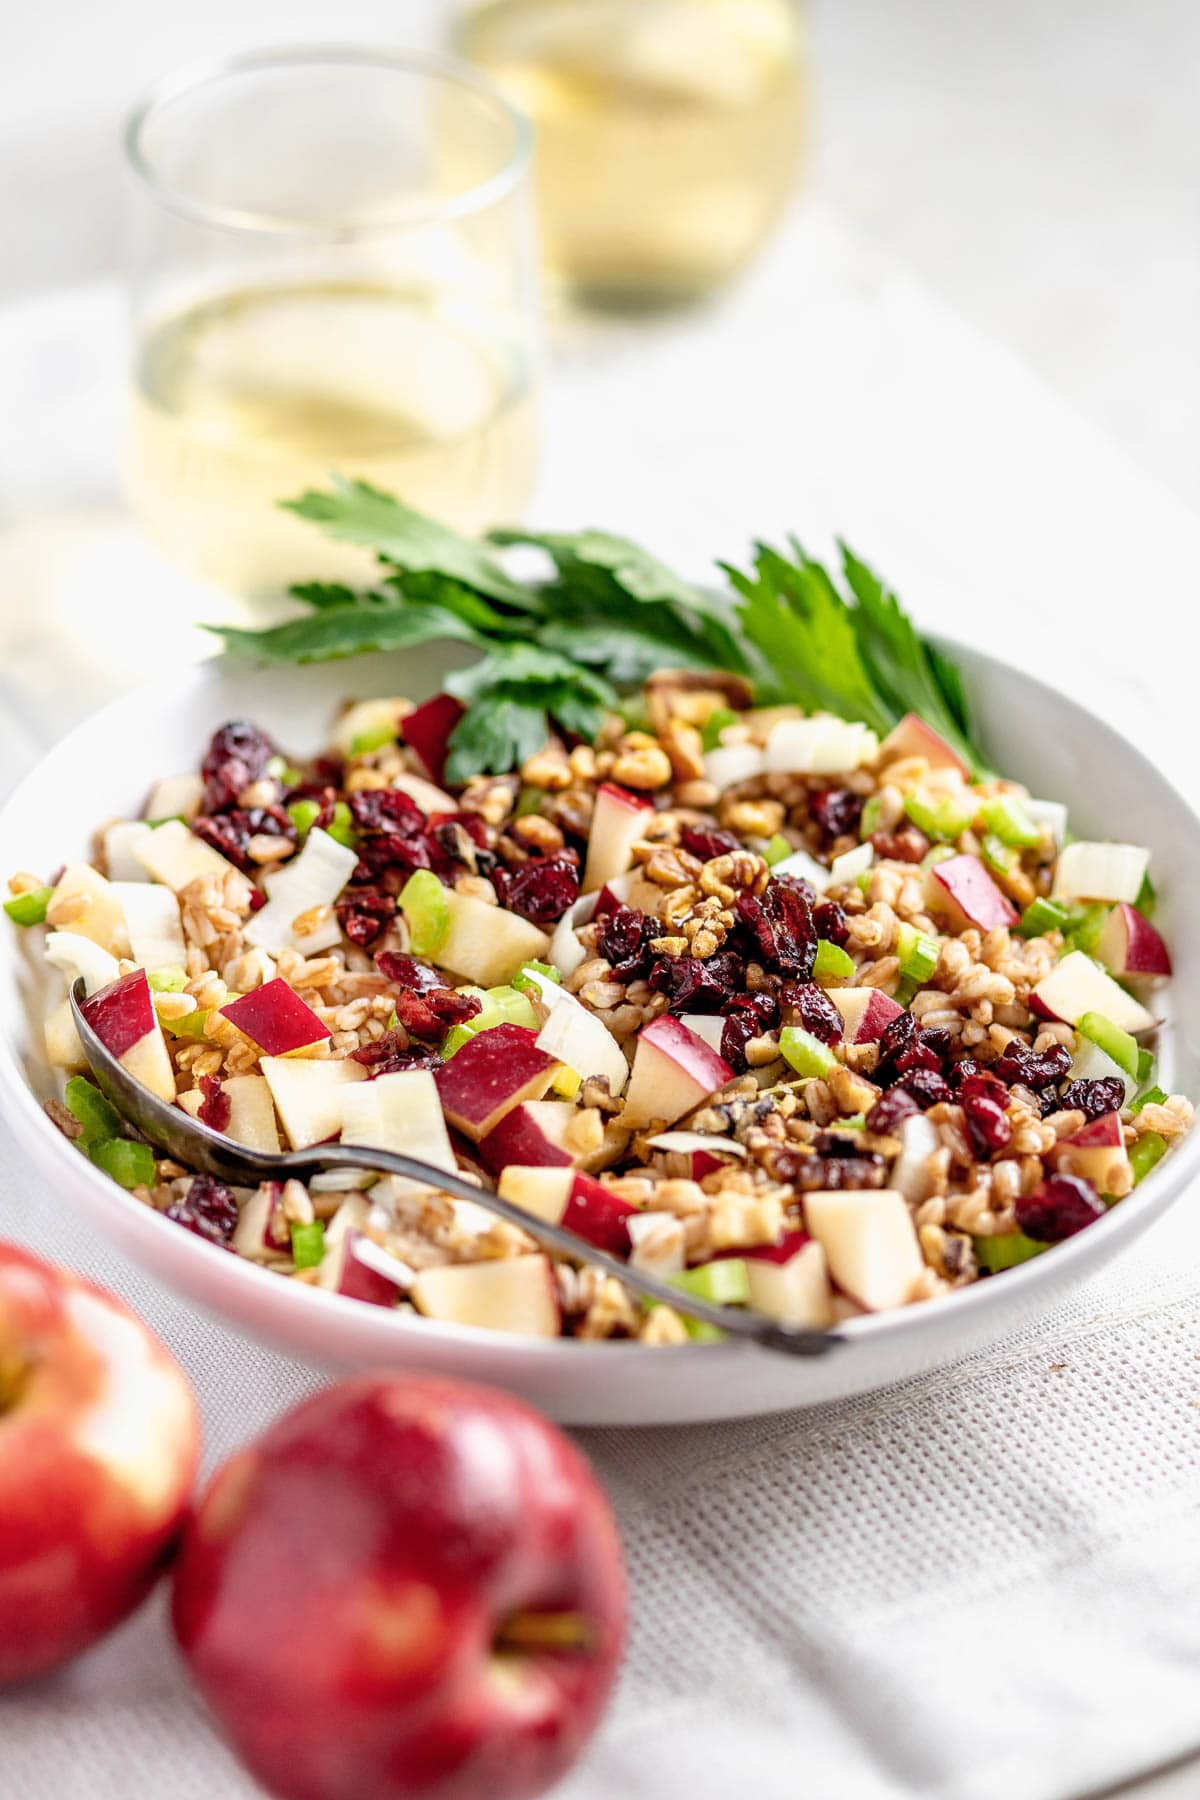 farro salad in a bowl from the side